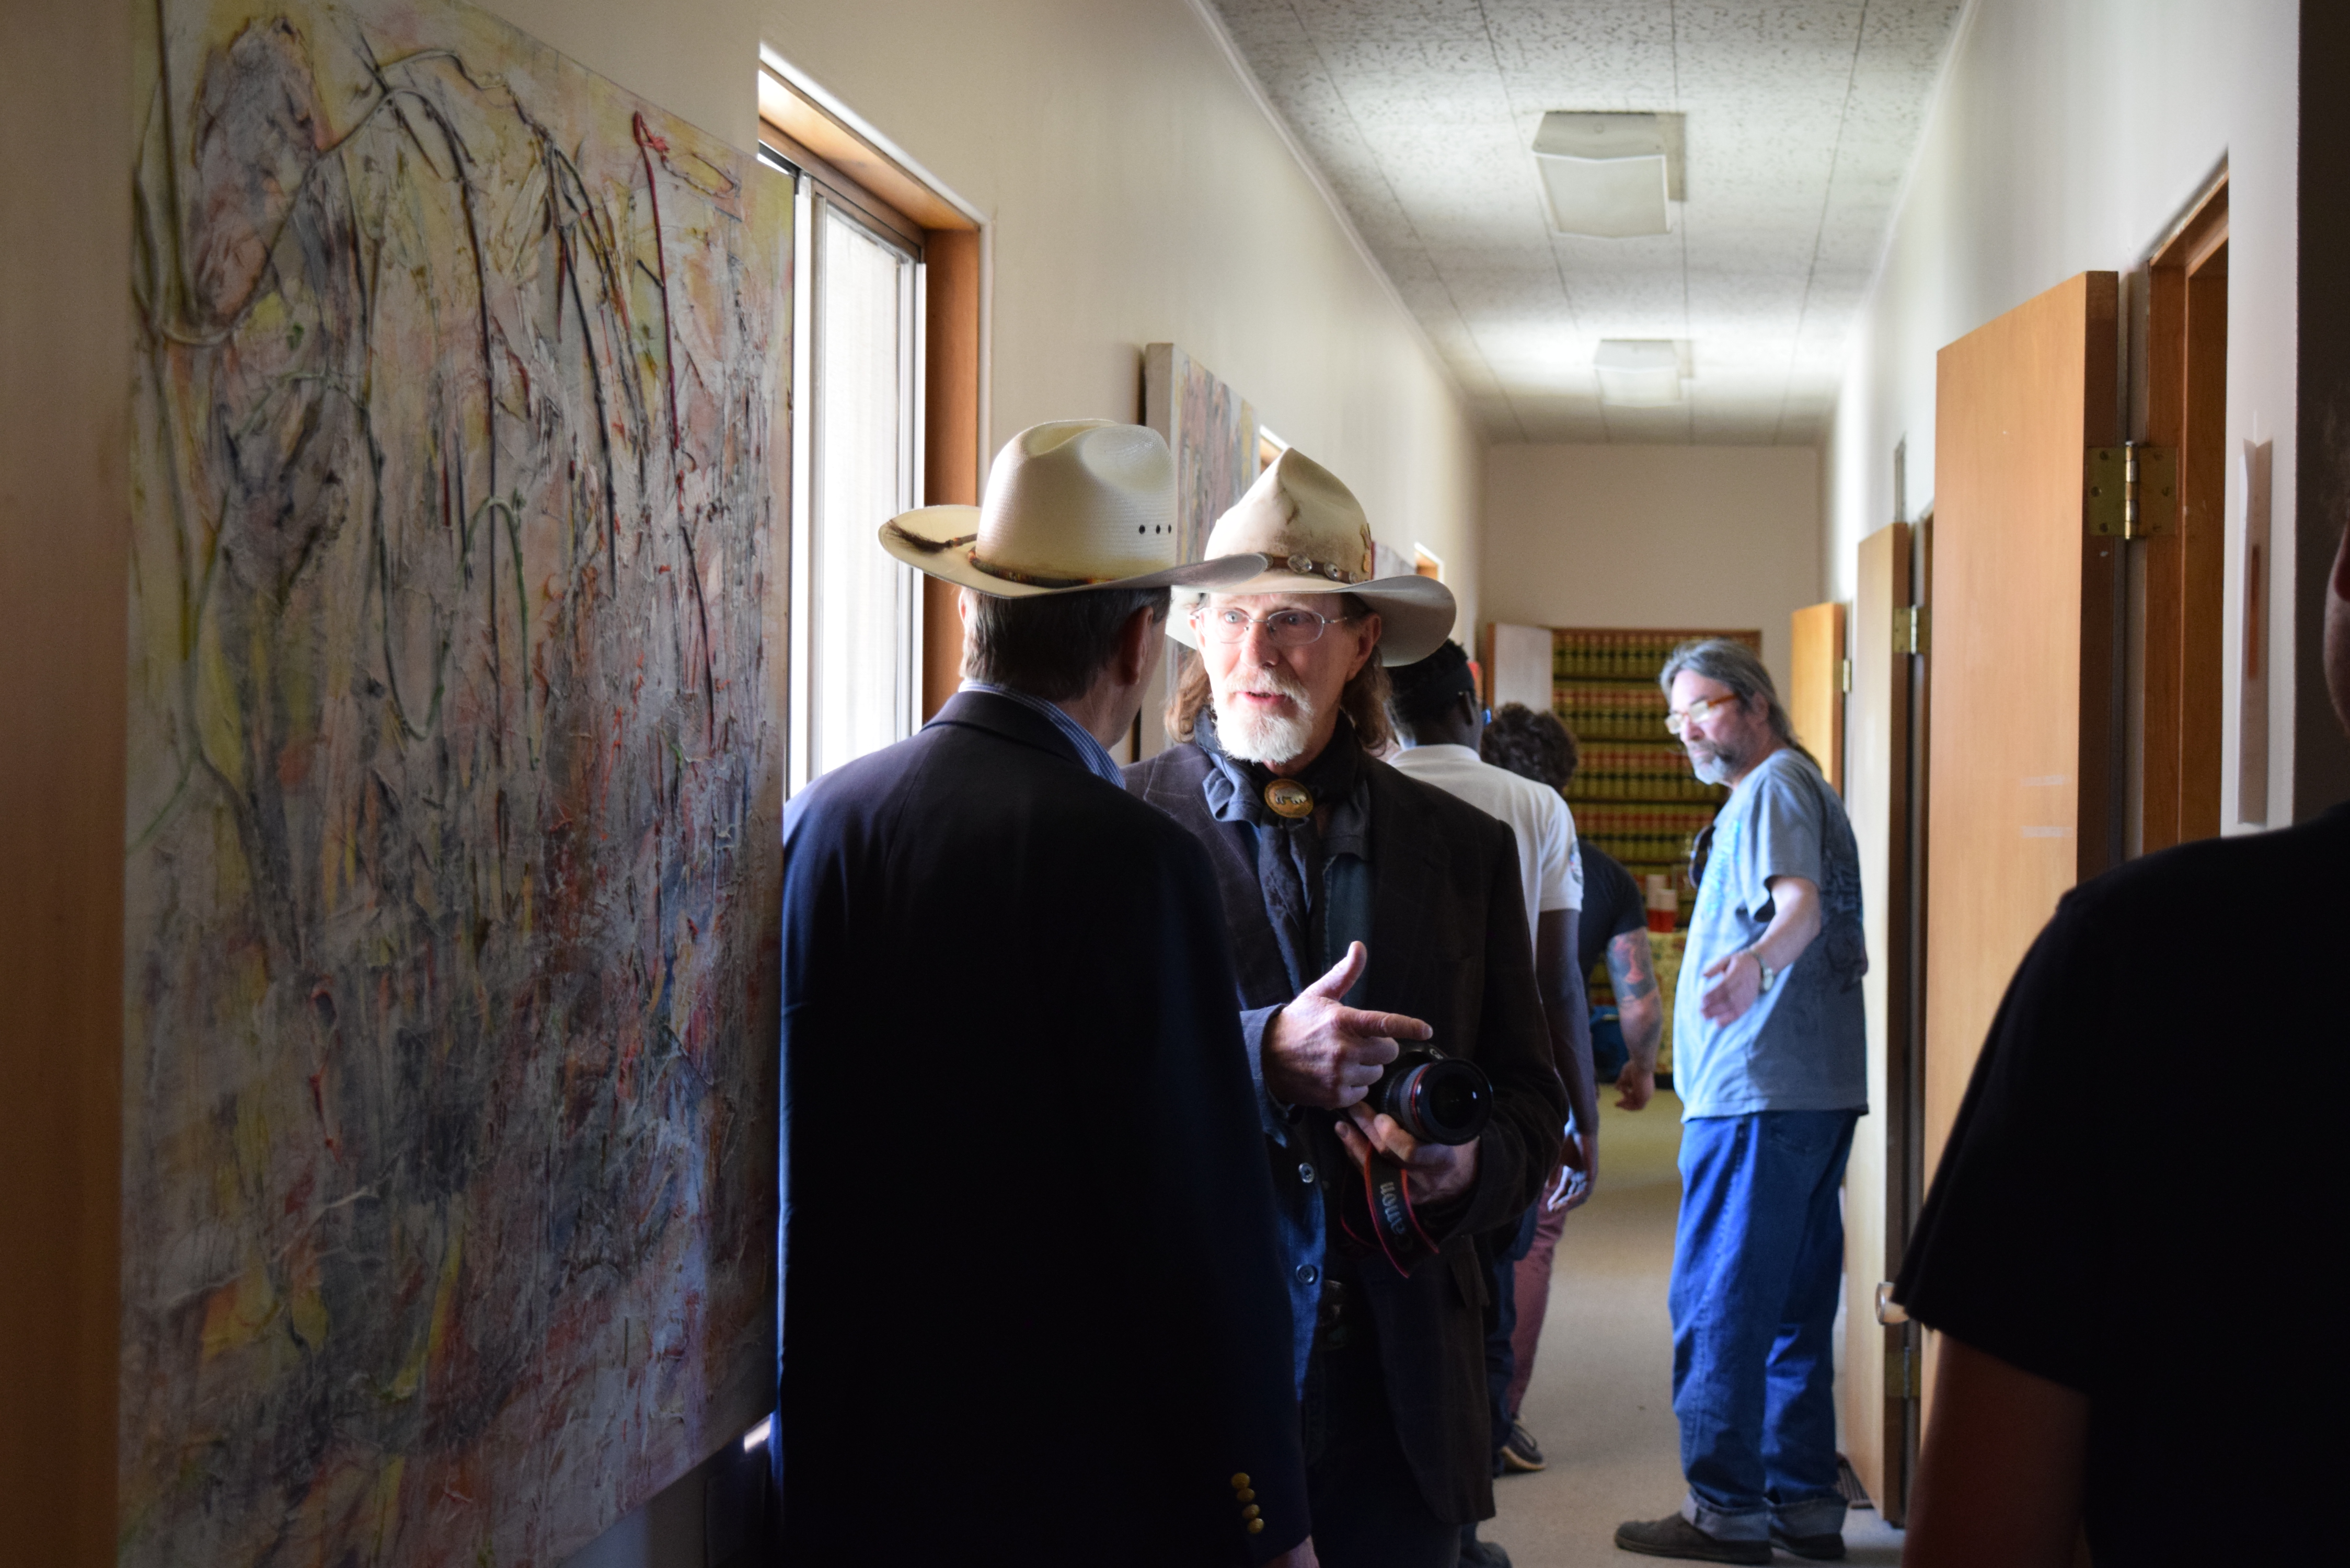 Senator Tom Udall conversing with a bearded man, both wearing straw Stetson hats and suits, in a busy, narrow hallway